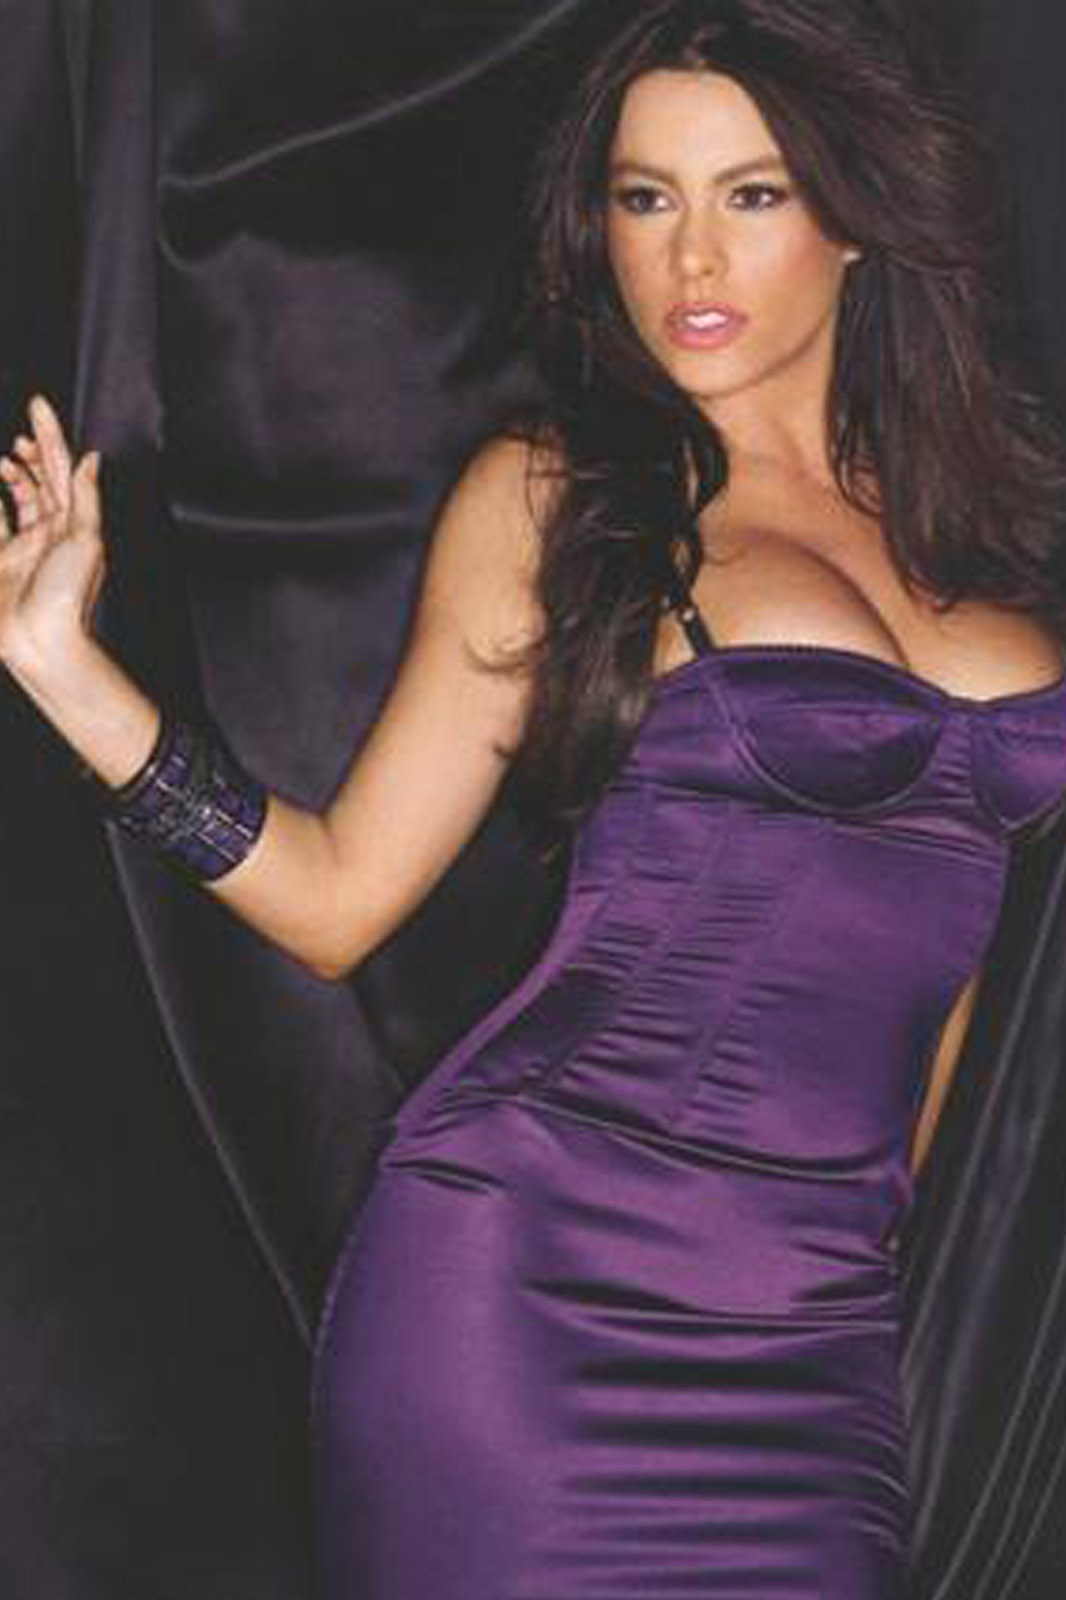 Sofia Vergara Soul Plane Sofia Vergara Hot Pictures Sofia Vergara Wallpapers